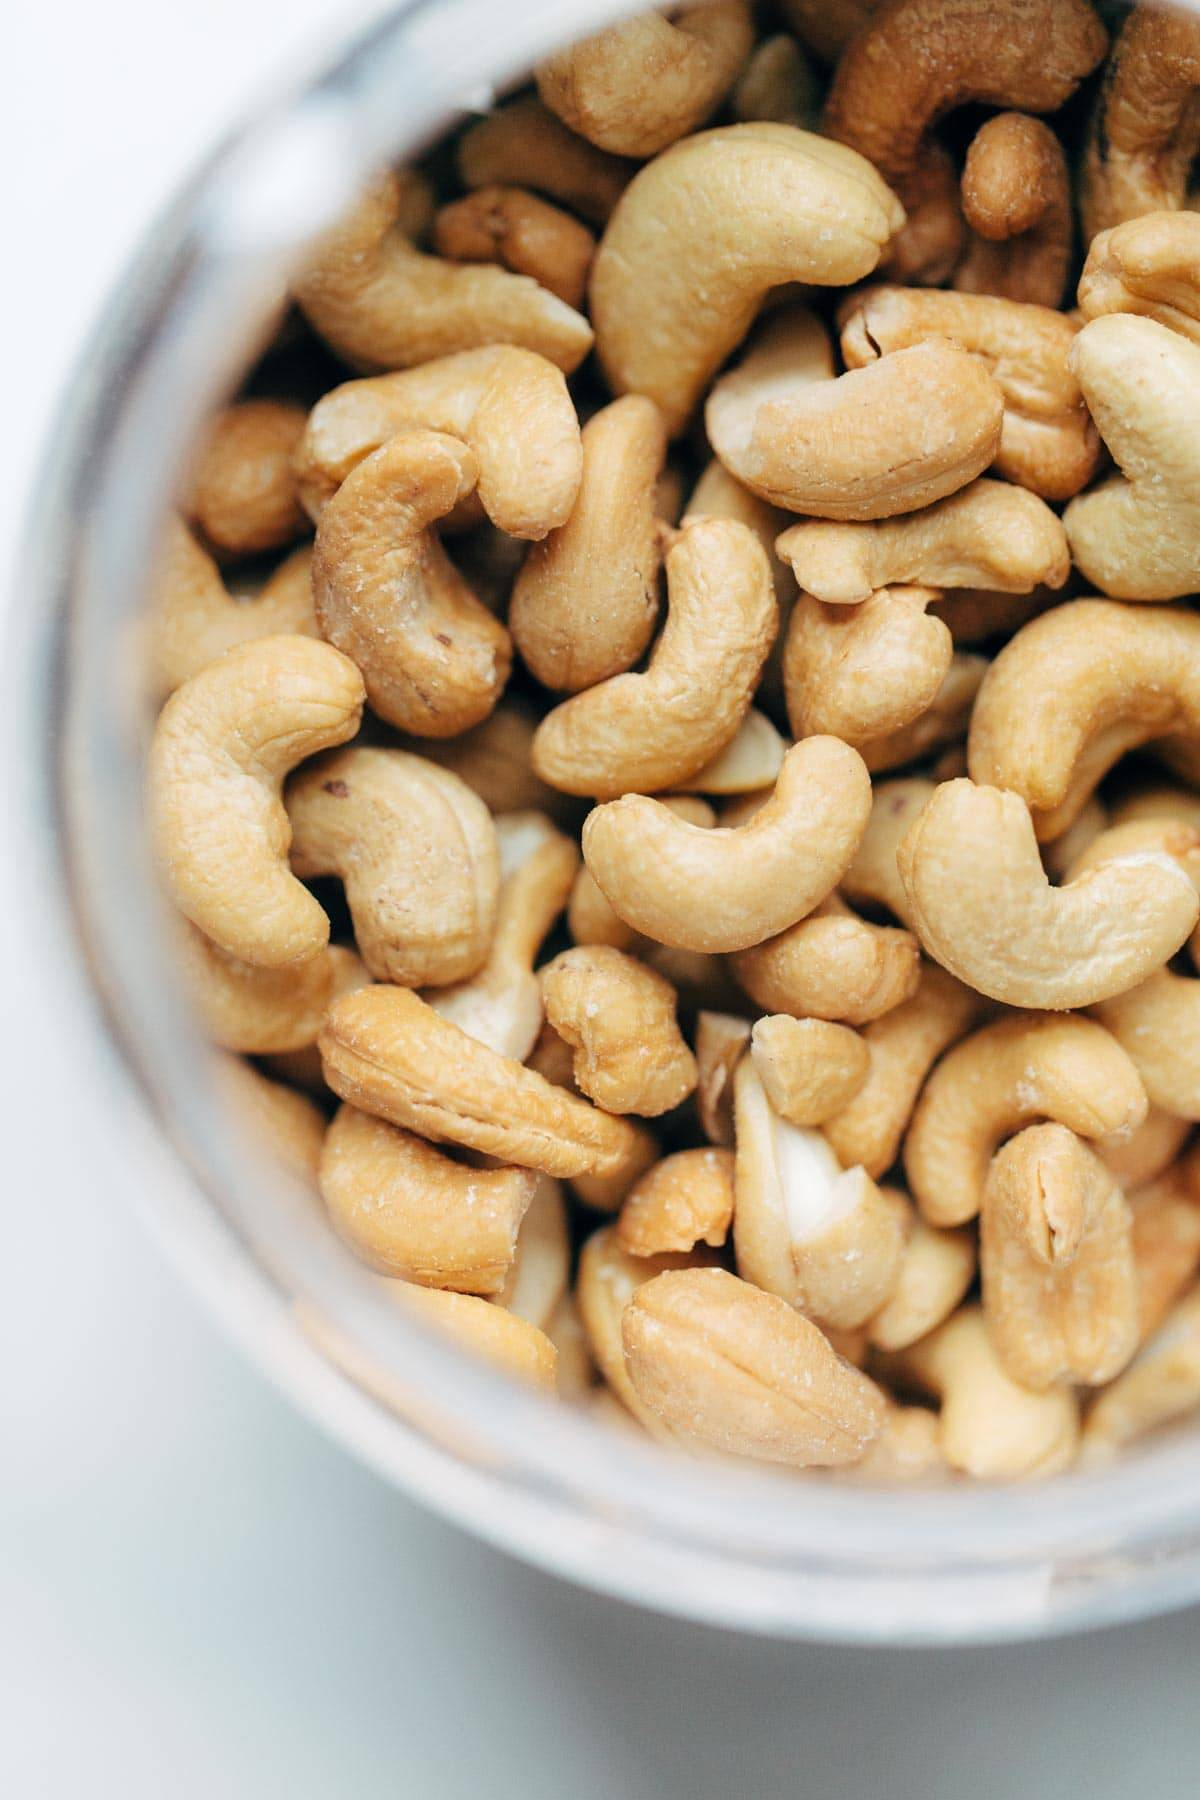 Cashews in a bowl.